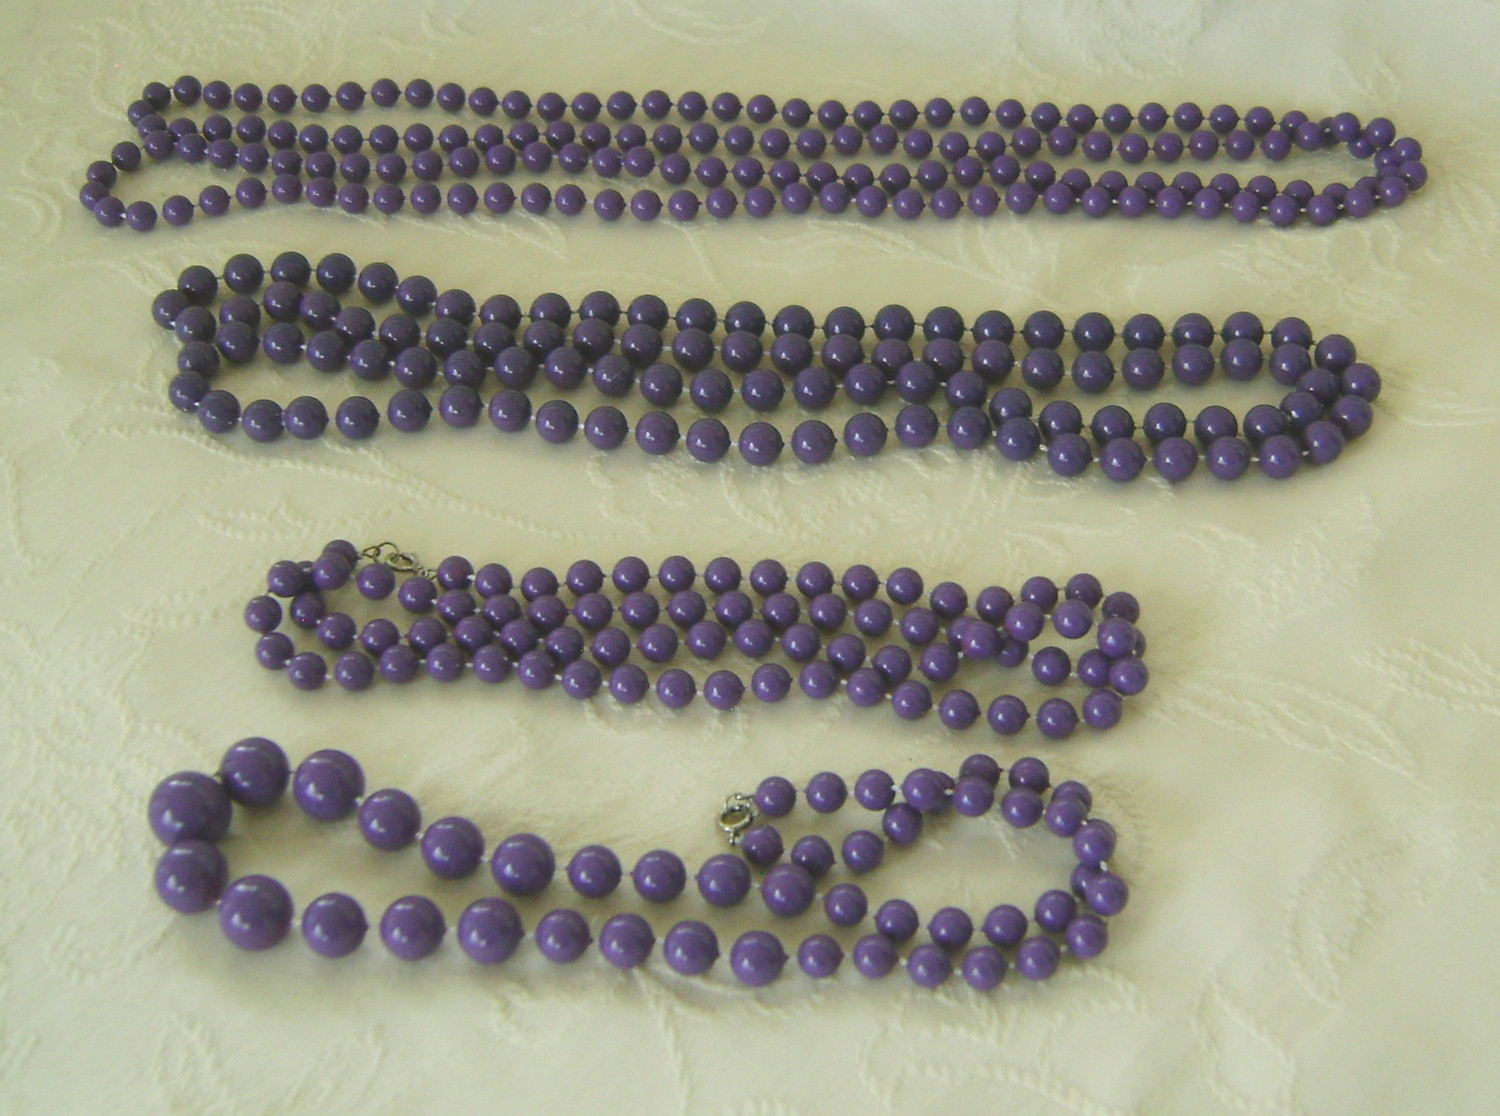 Necklaces, 4 Strands Purple Beads, Multi-Length